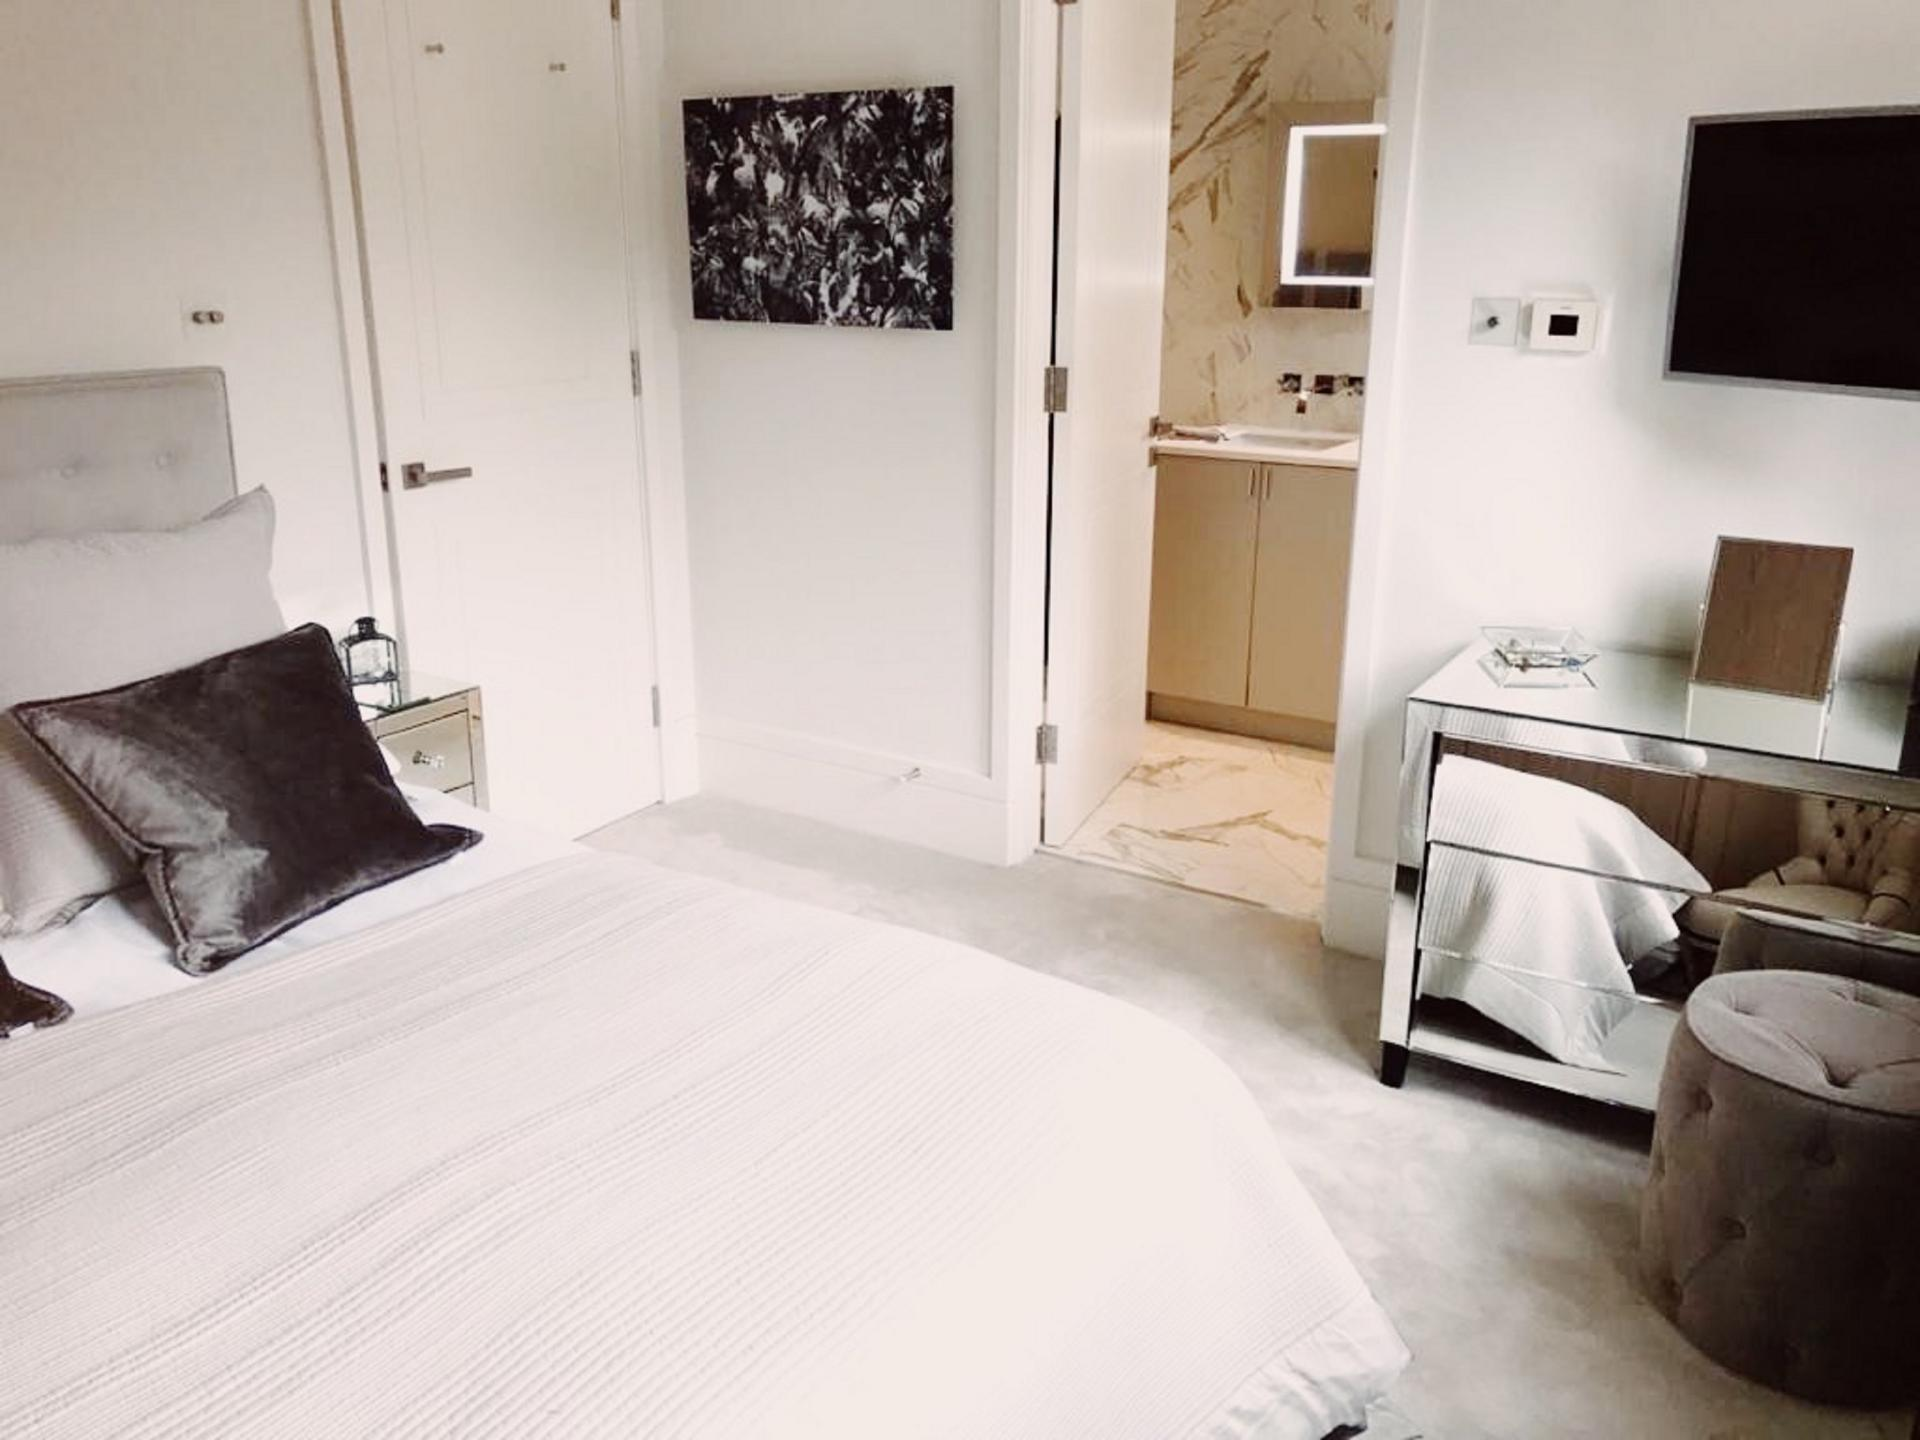 Cosy bed at Old Chelsea Apartment, Chelsea, London